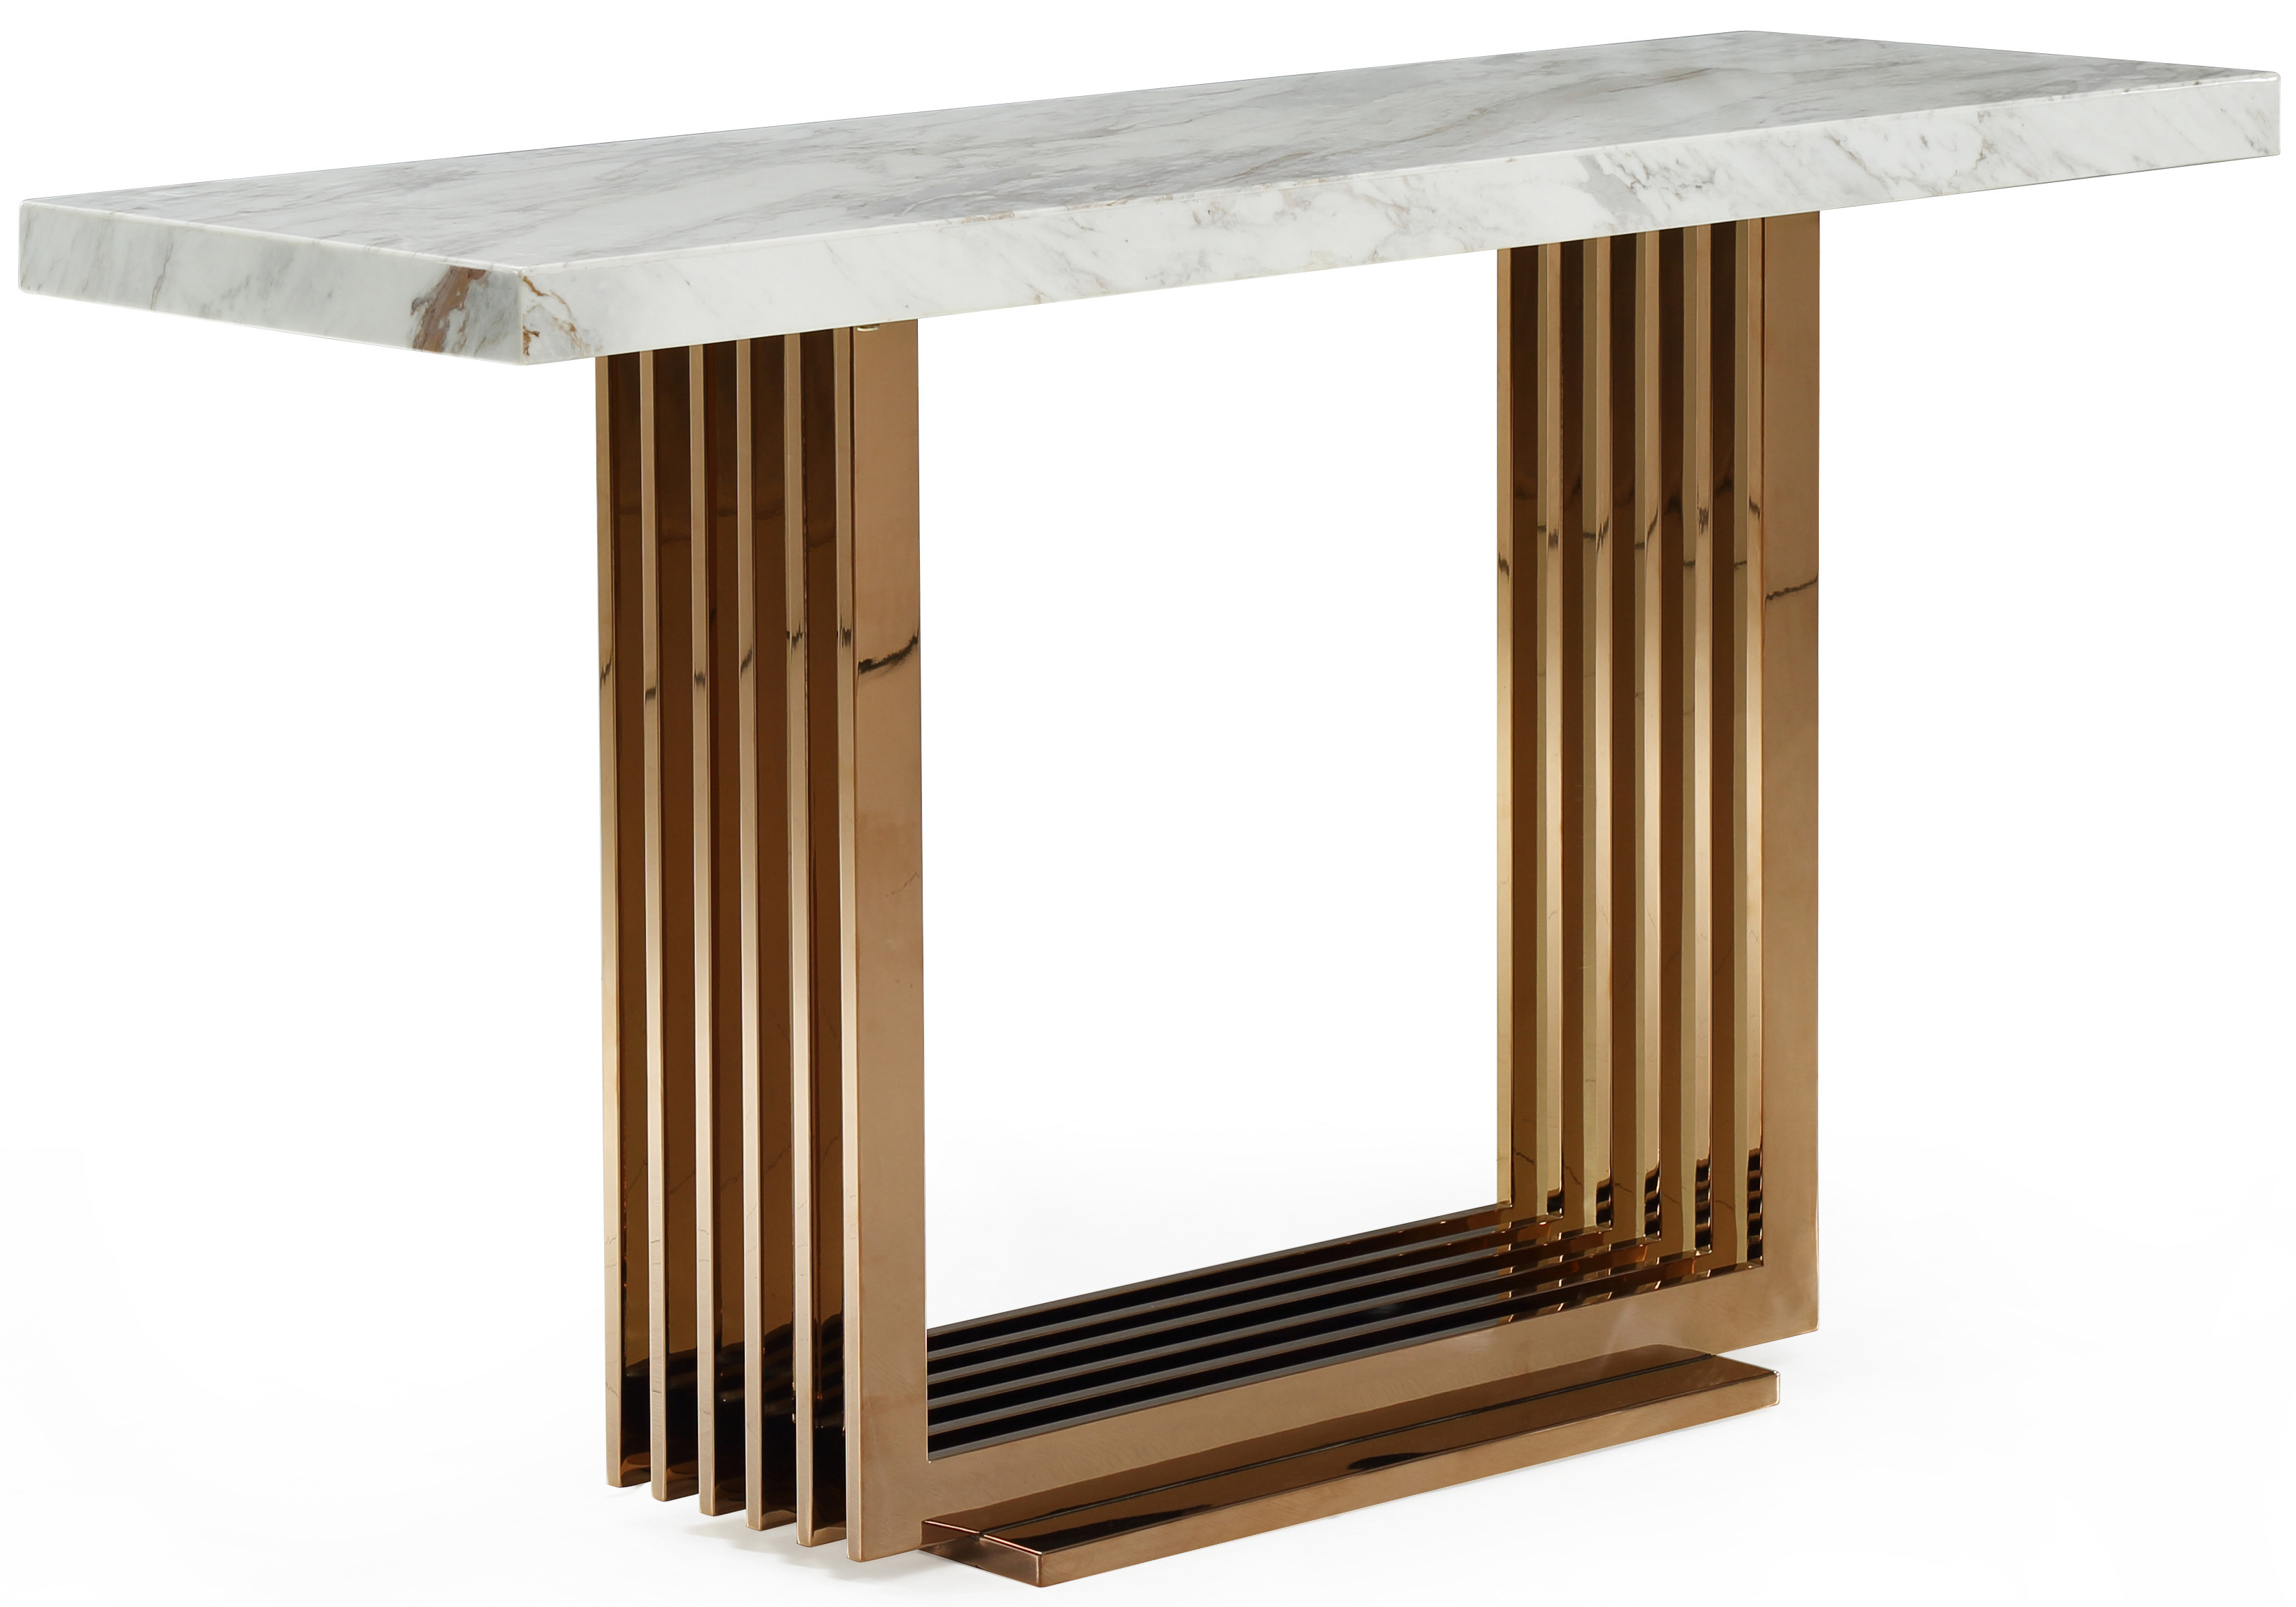 Awesome Check Out The New Fabrizio White Top Marble Console Table Available At  AdvancedInteriorDesigns.com ...